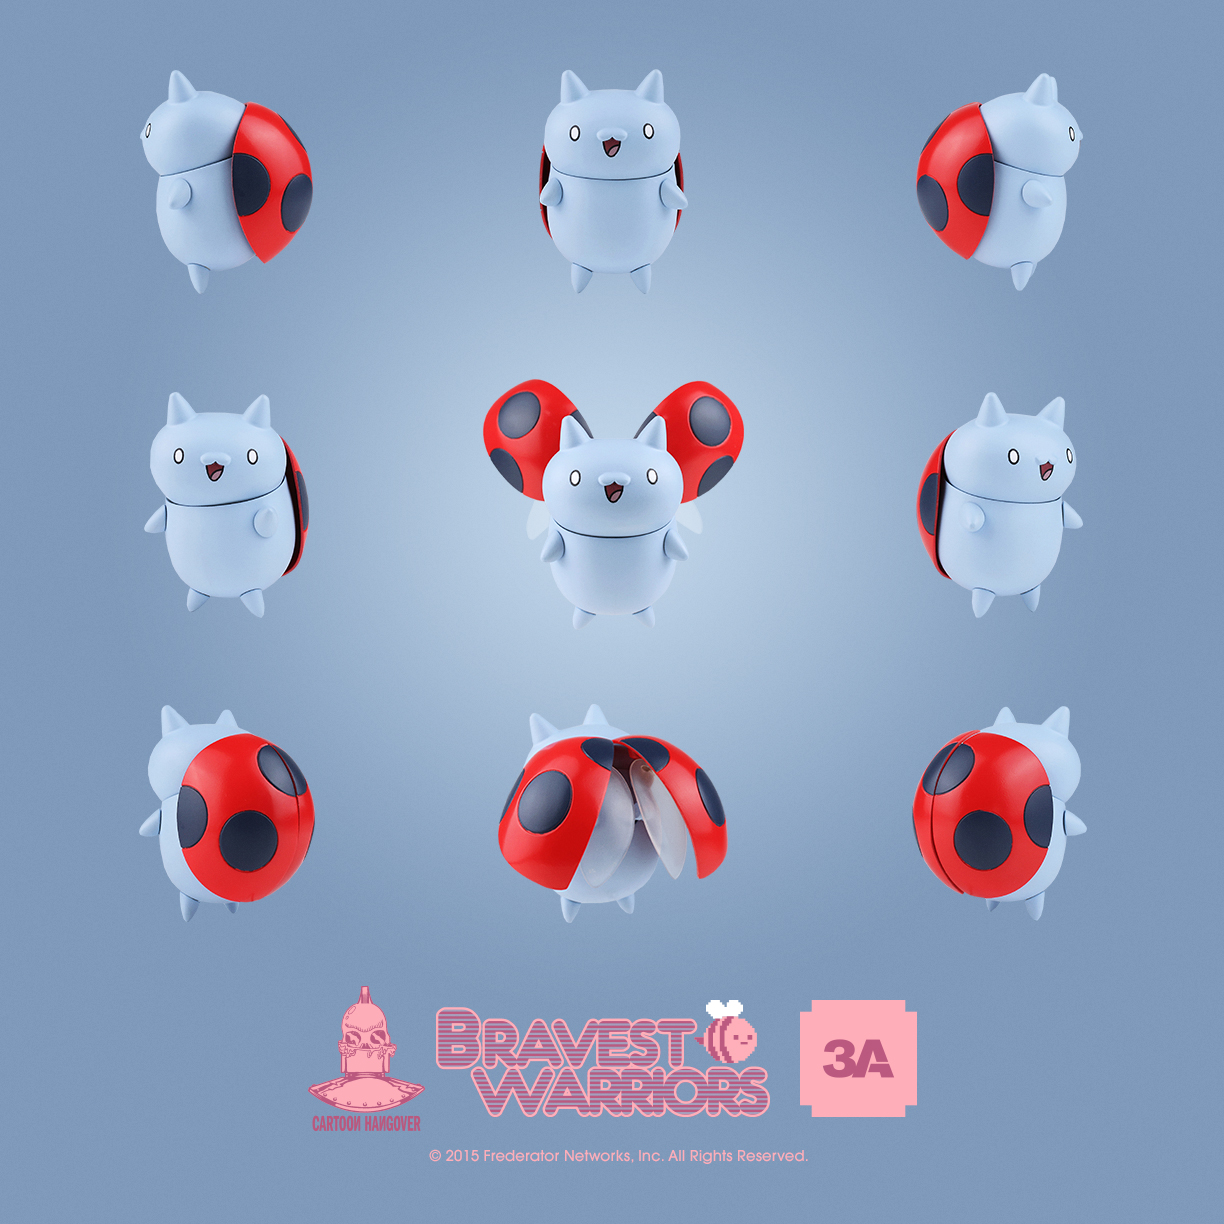 action figure insider worldof3a gets brave and takes on catbug